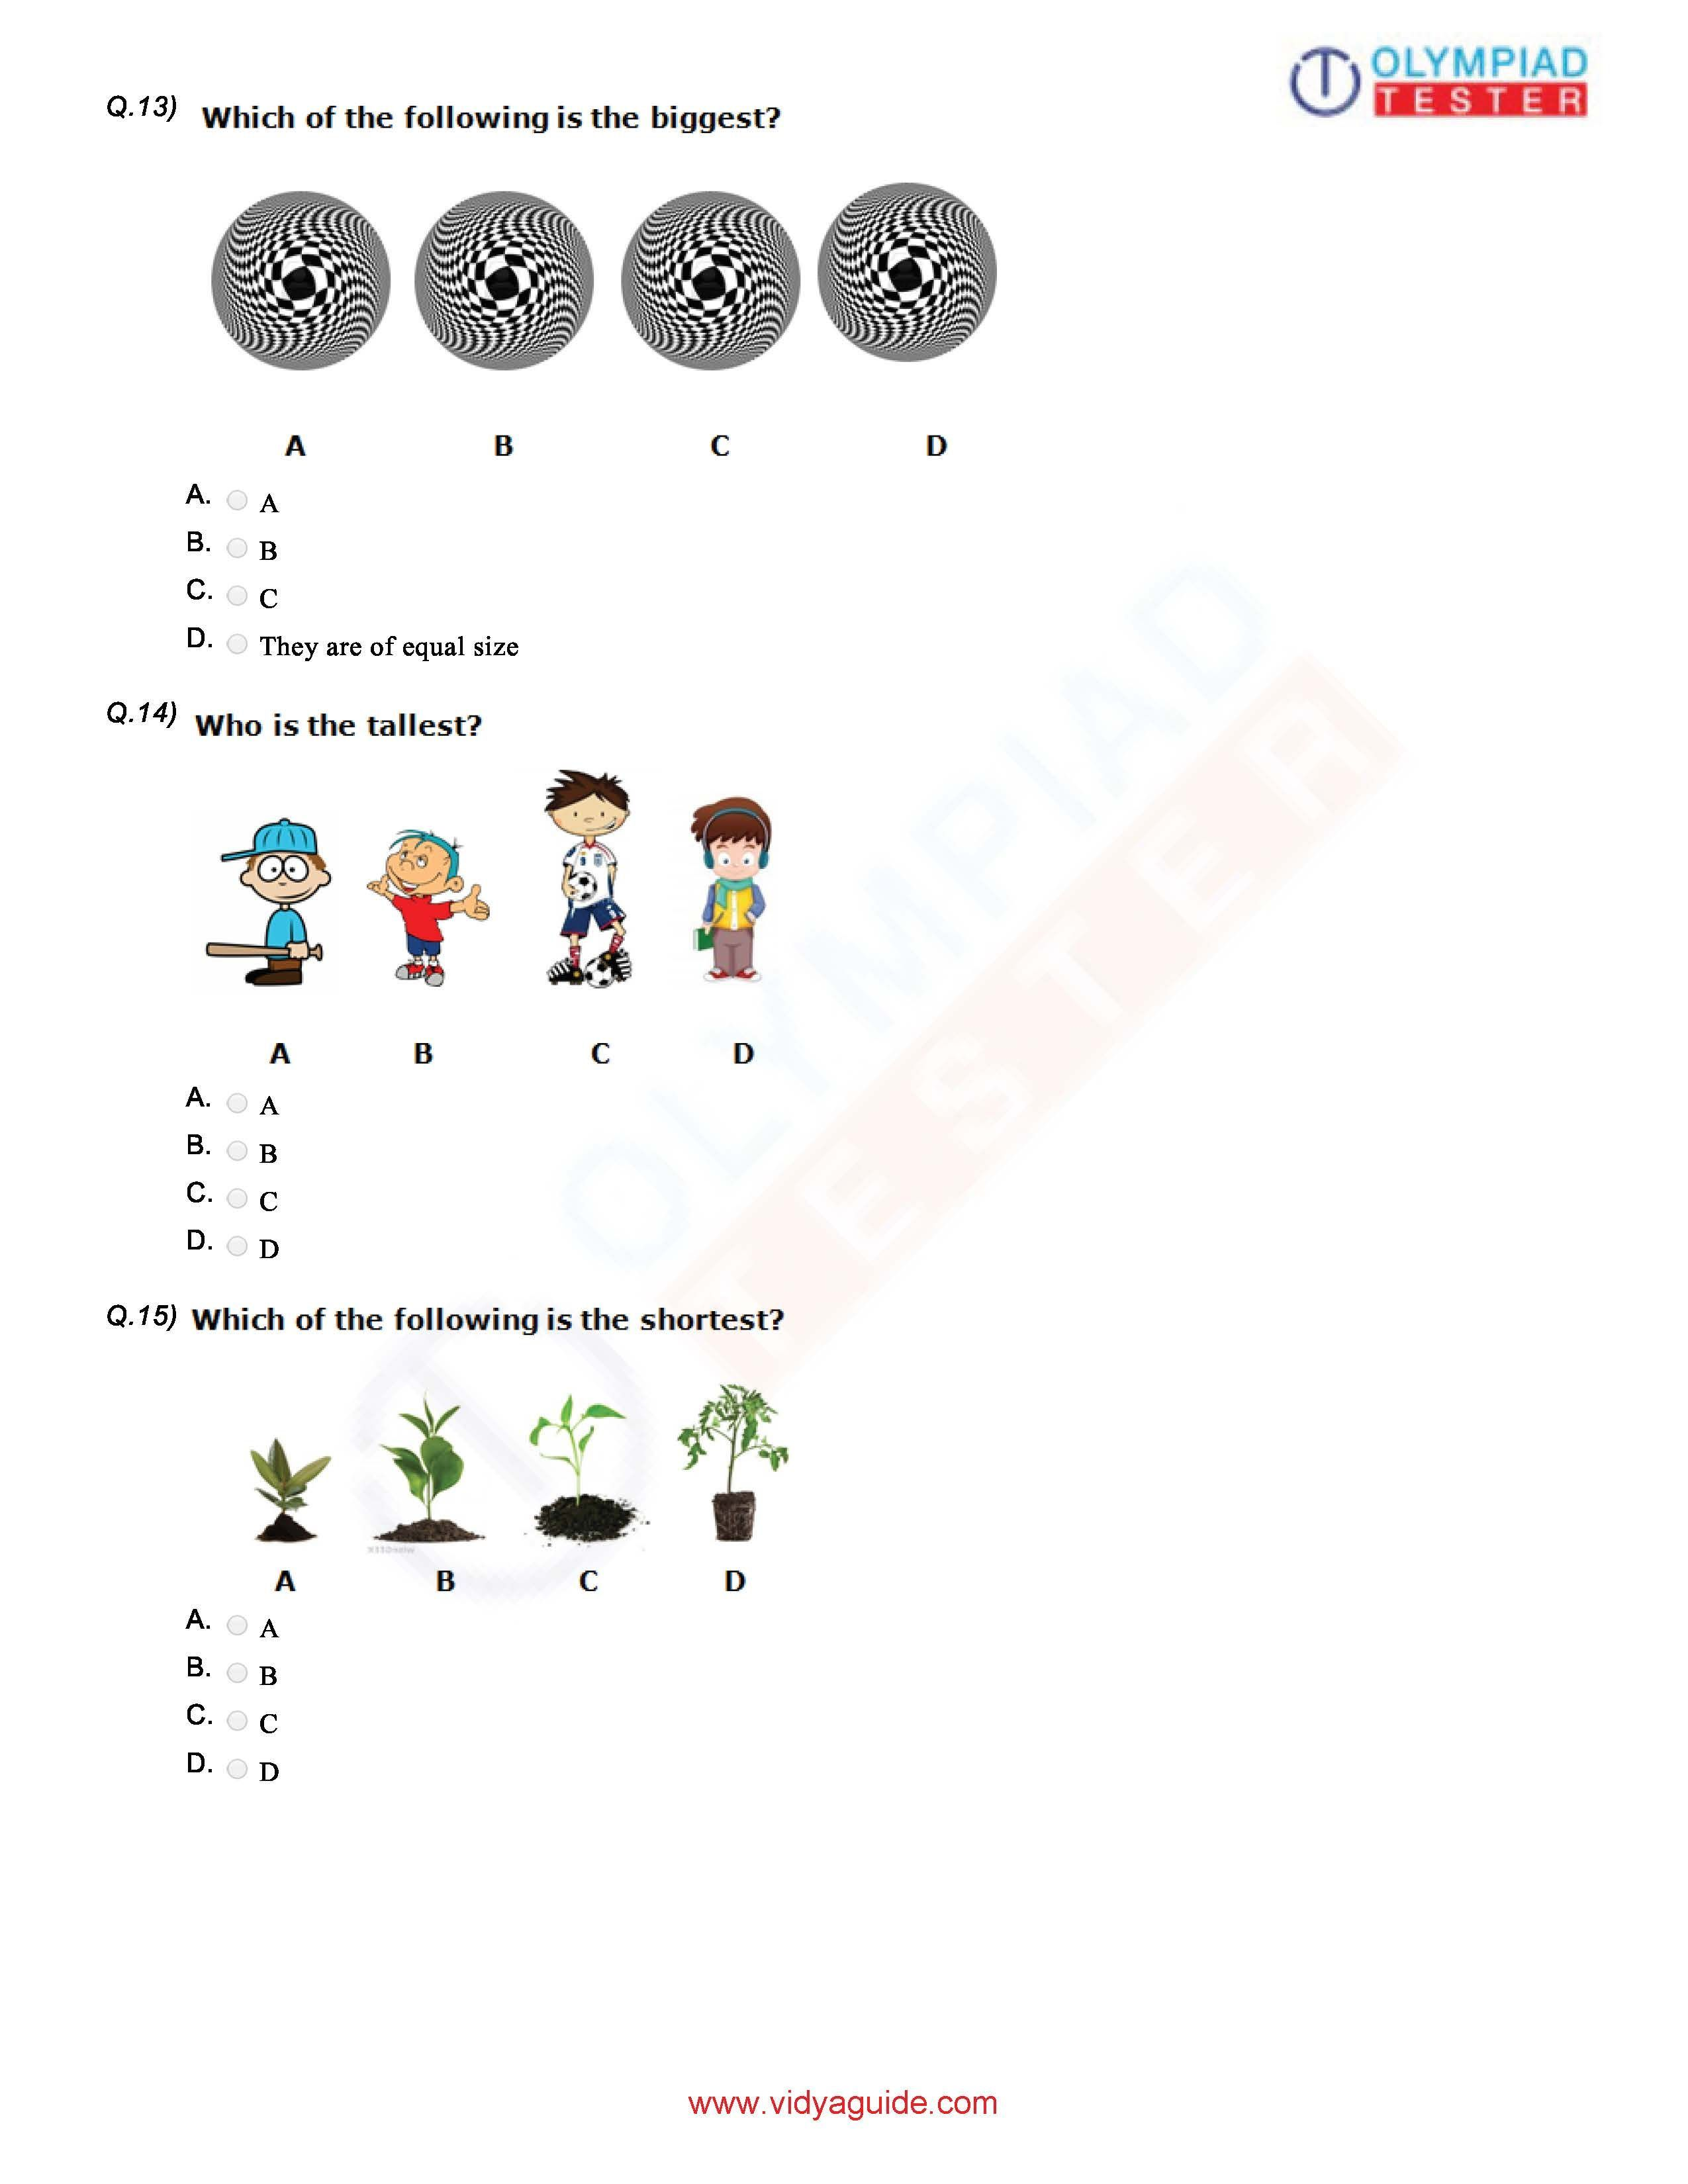 Download Class 1 Maths Olympiad Sample Papers As Pdf Worksheets On